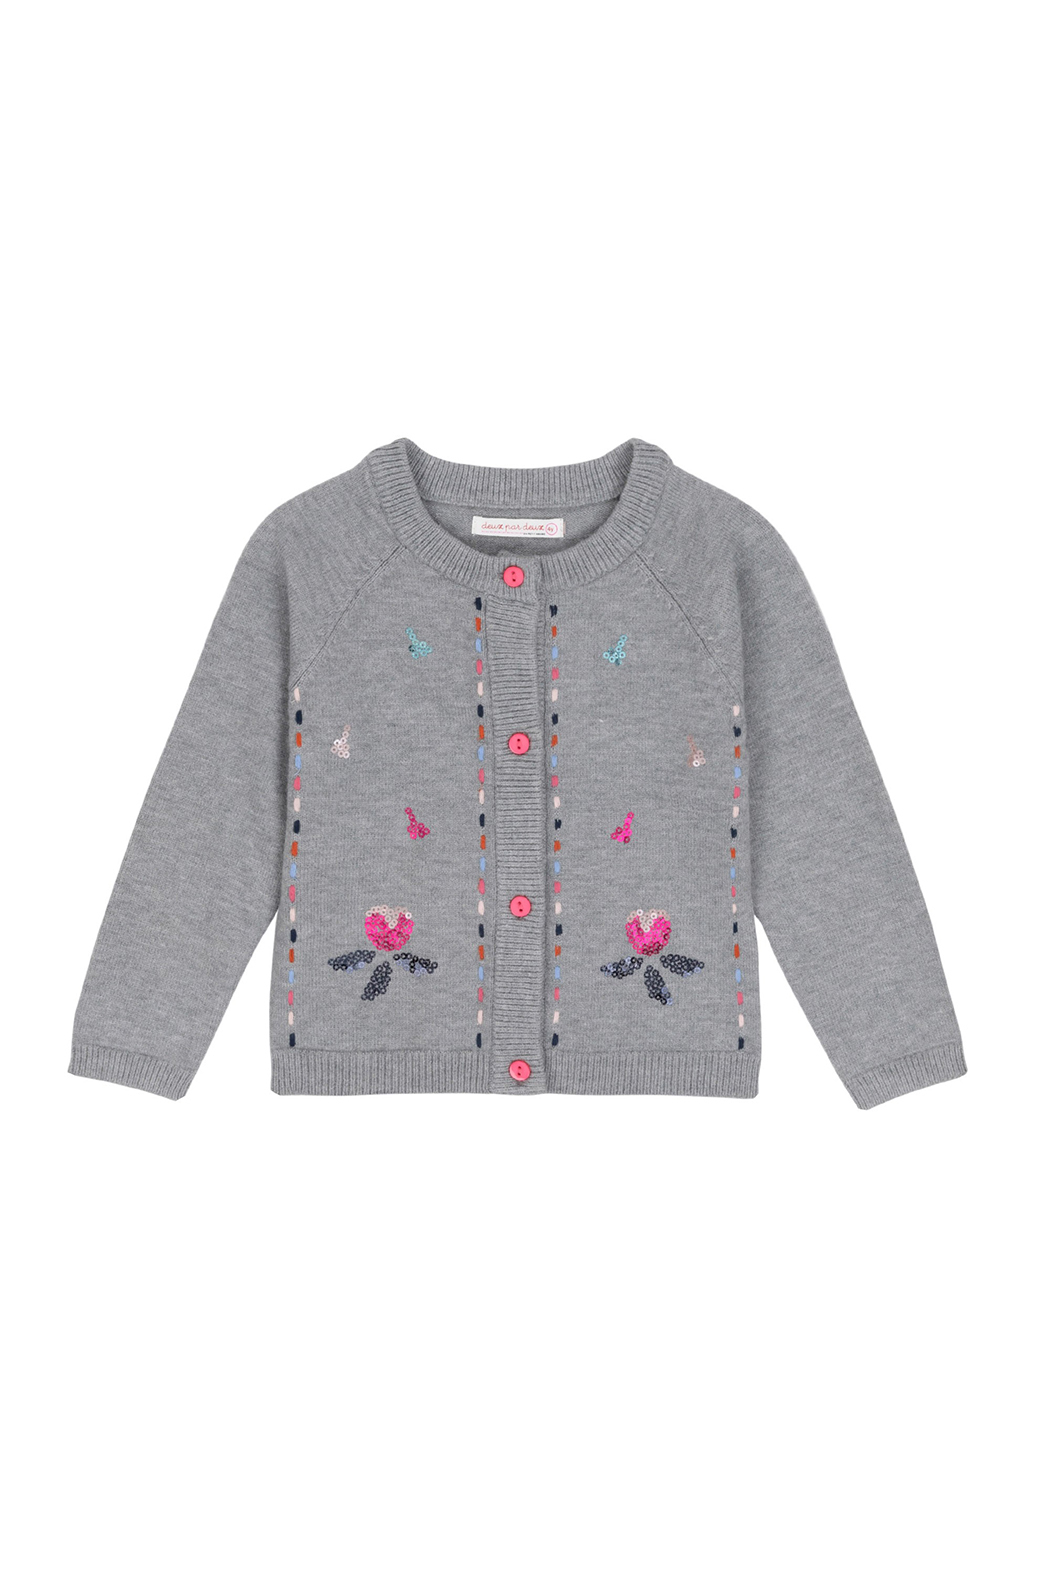 Deux Par Deux Grey Knitted Cardigan With Floral Embroidery - Main Image